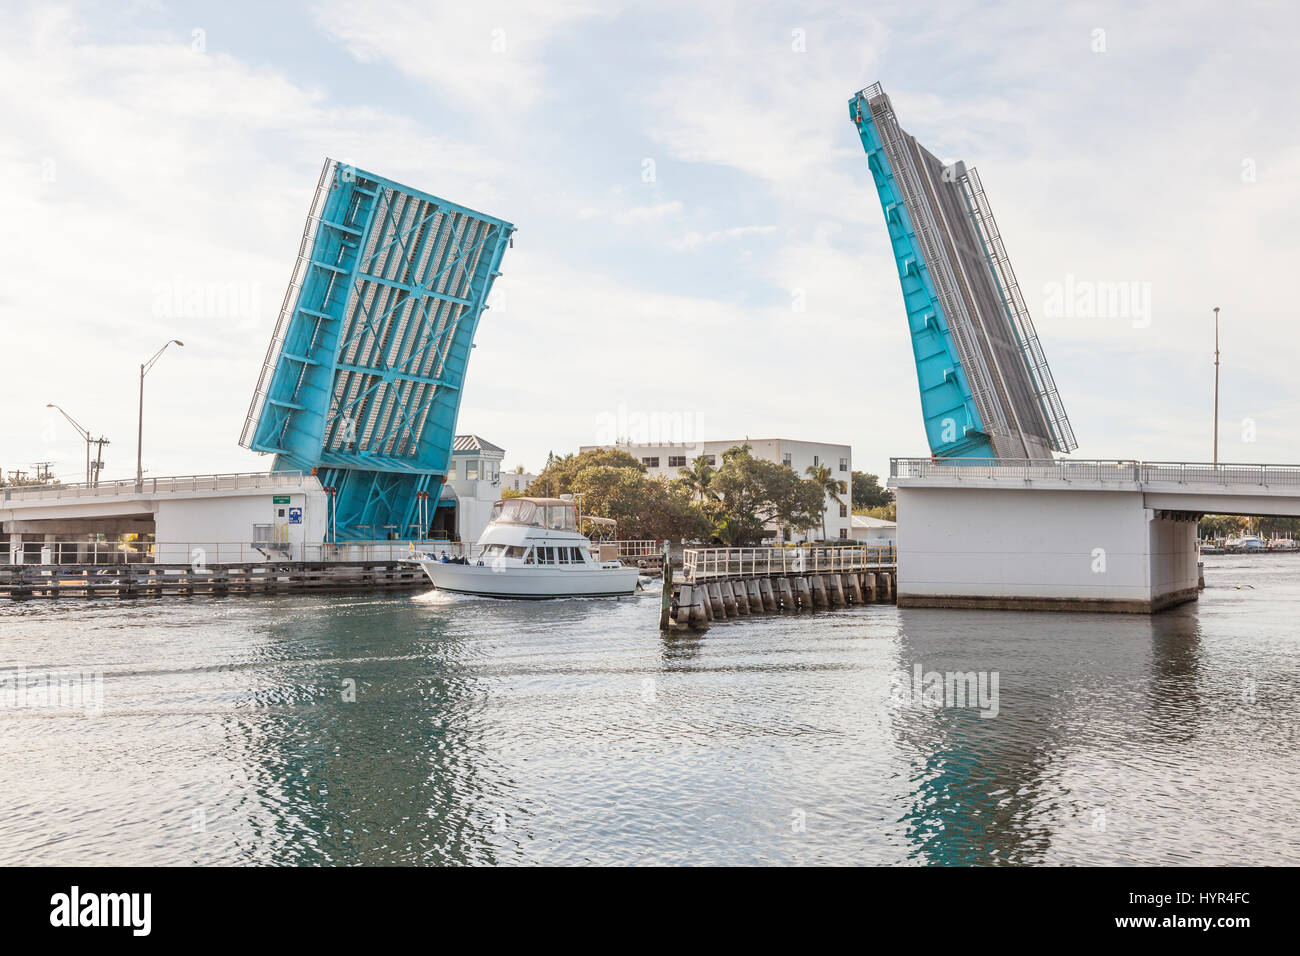 Boat coming through the open drawbridge in Pompano Beach. Florida, United States - Stock Image